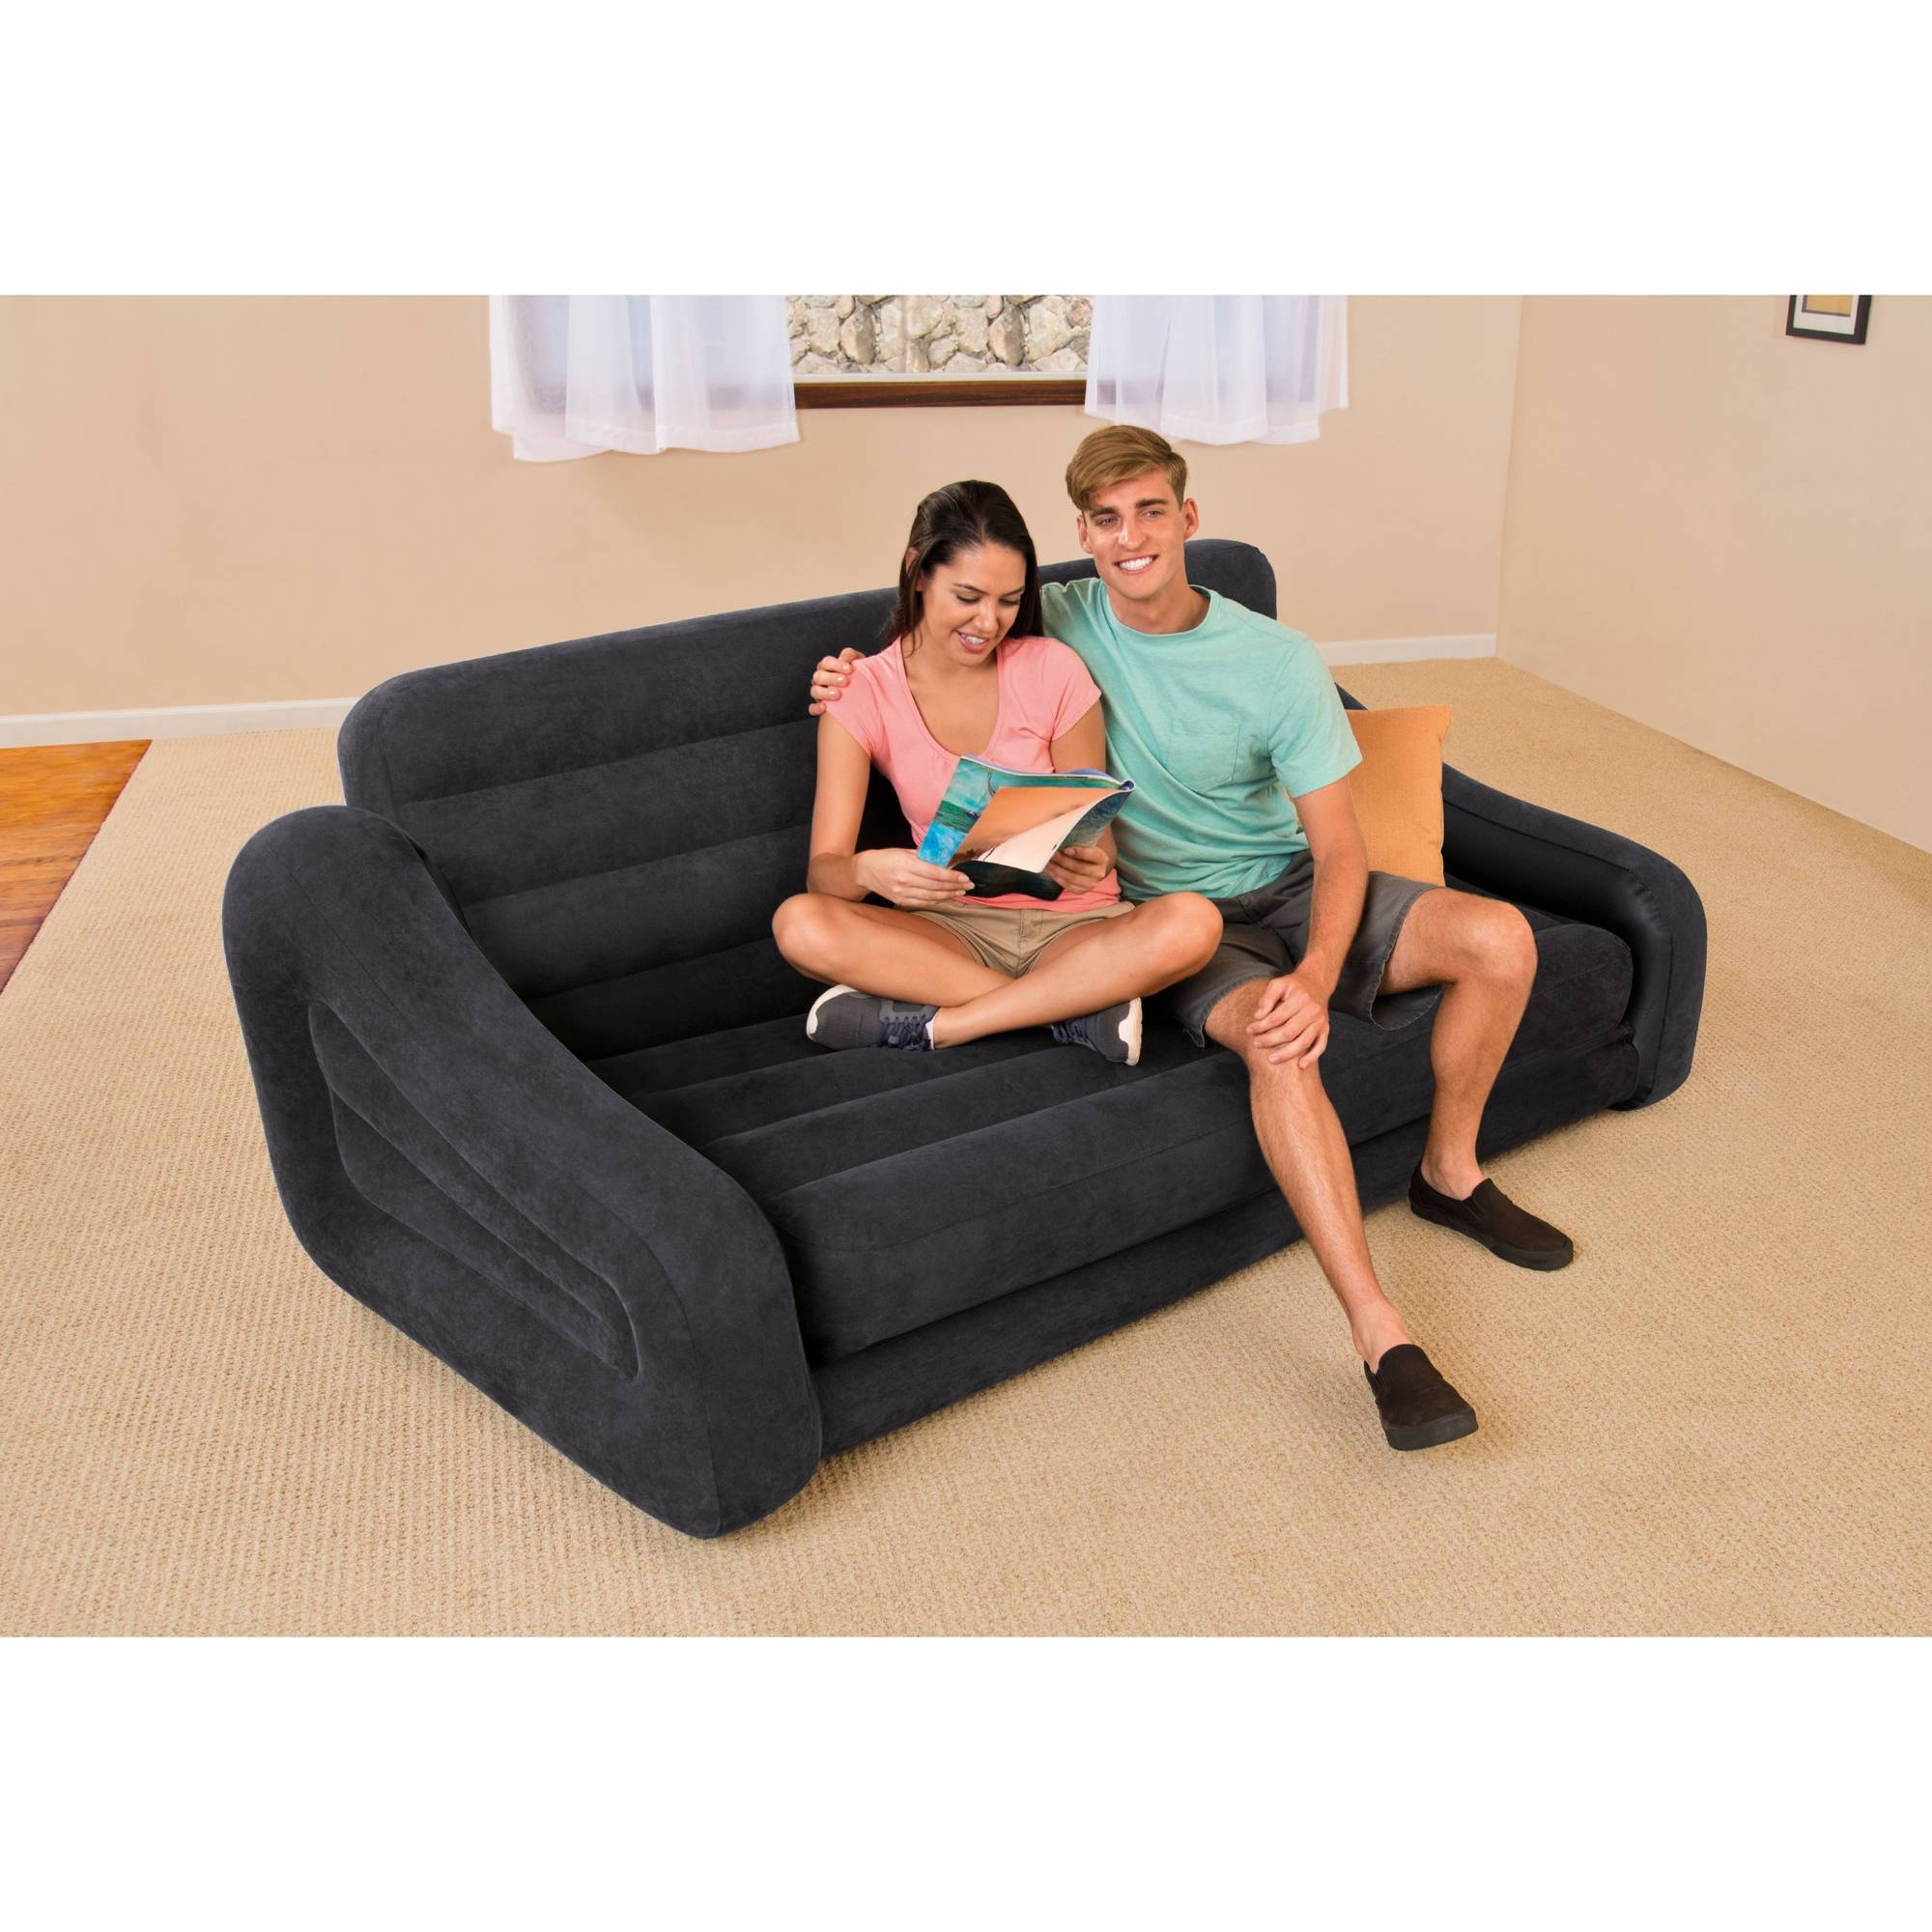 Intex Queen Inflatable Pull-Out Sofa Bed - Walmart with Intex Inflatable Sofas (Image 15 of 15)